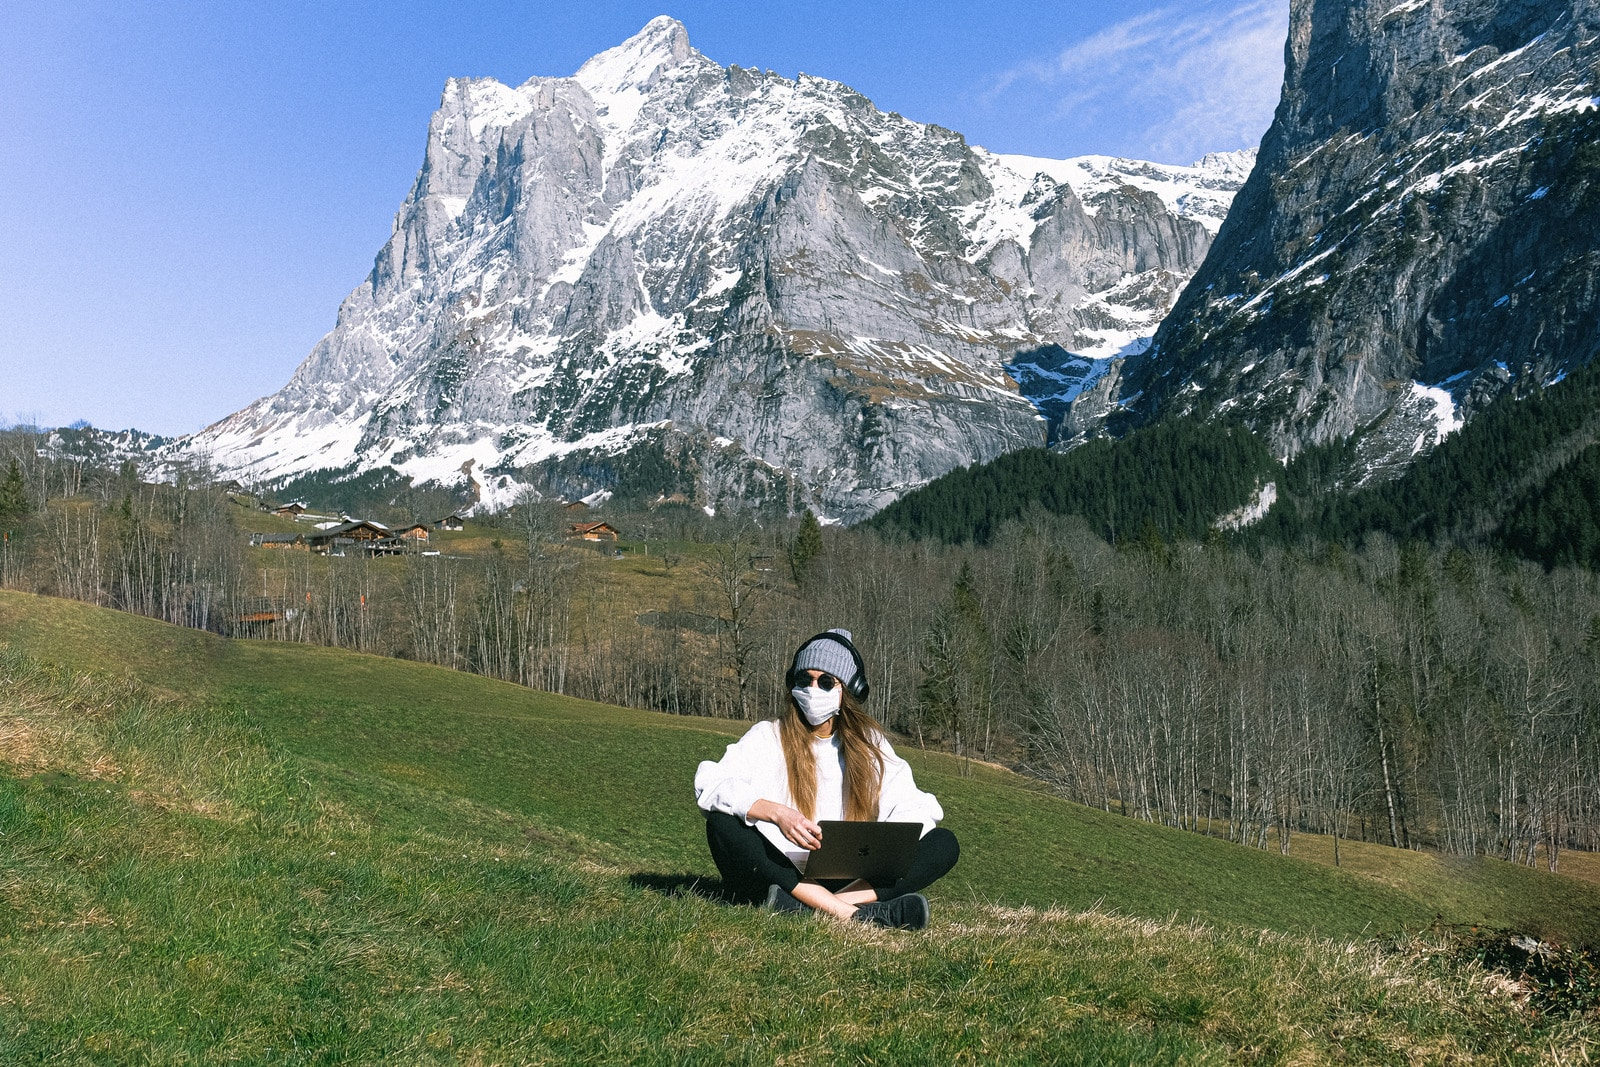 Foto von Anna Shvets: https://www.canva.com/photos/MAD2zrC4Q7M-woman-wearing-face-mask-on-mountain/